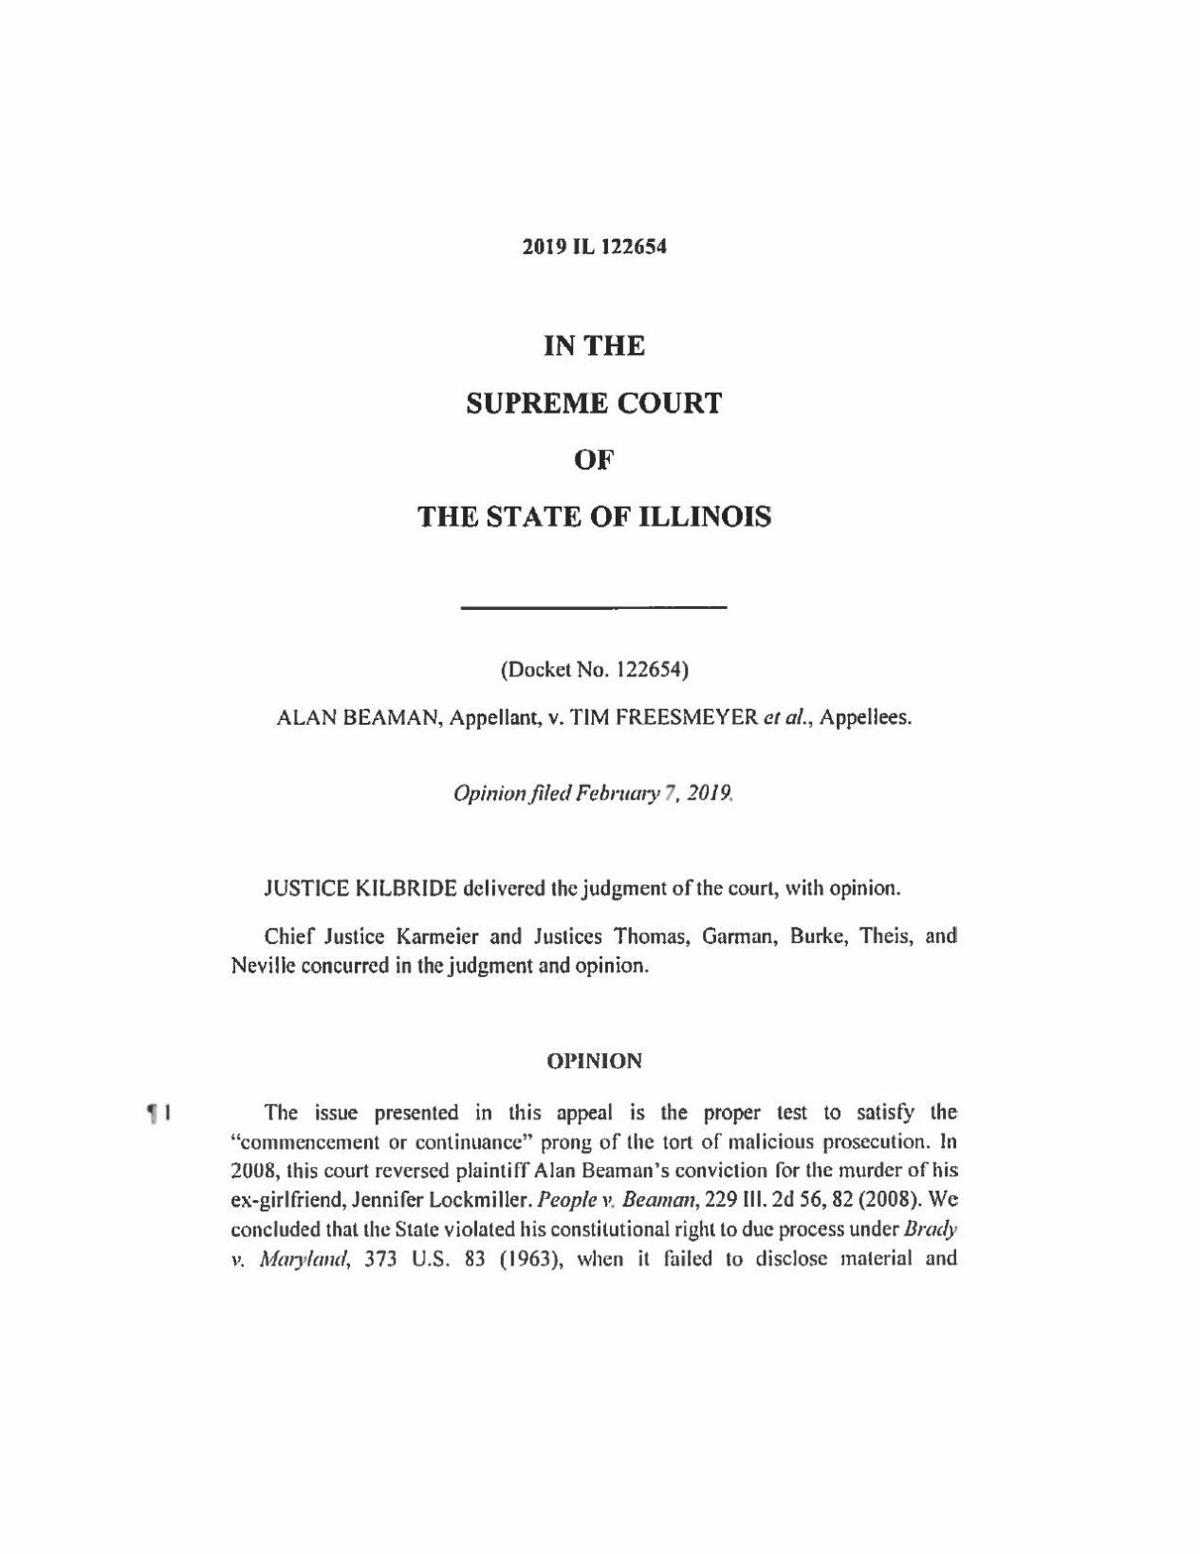 Illinois Supreme Court decision on Beaman's case here (copy)